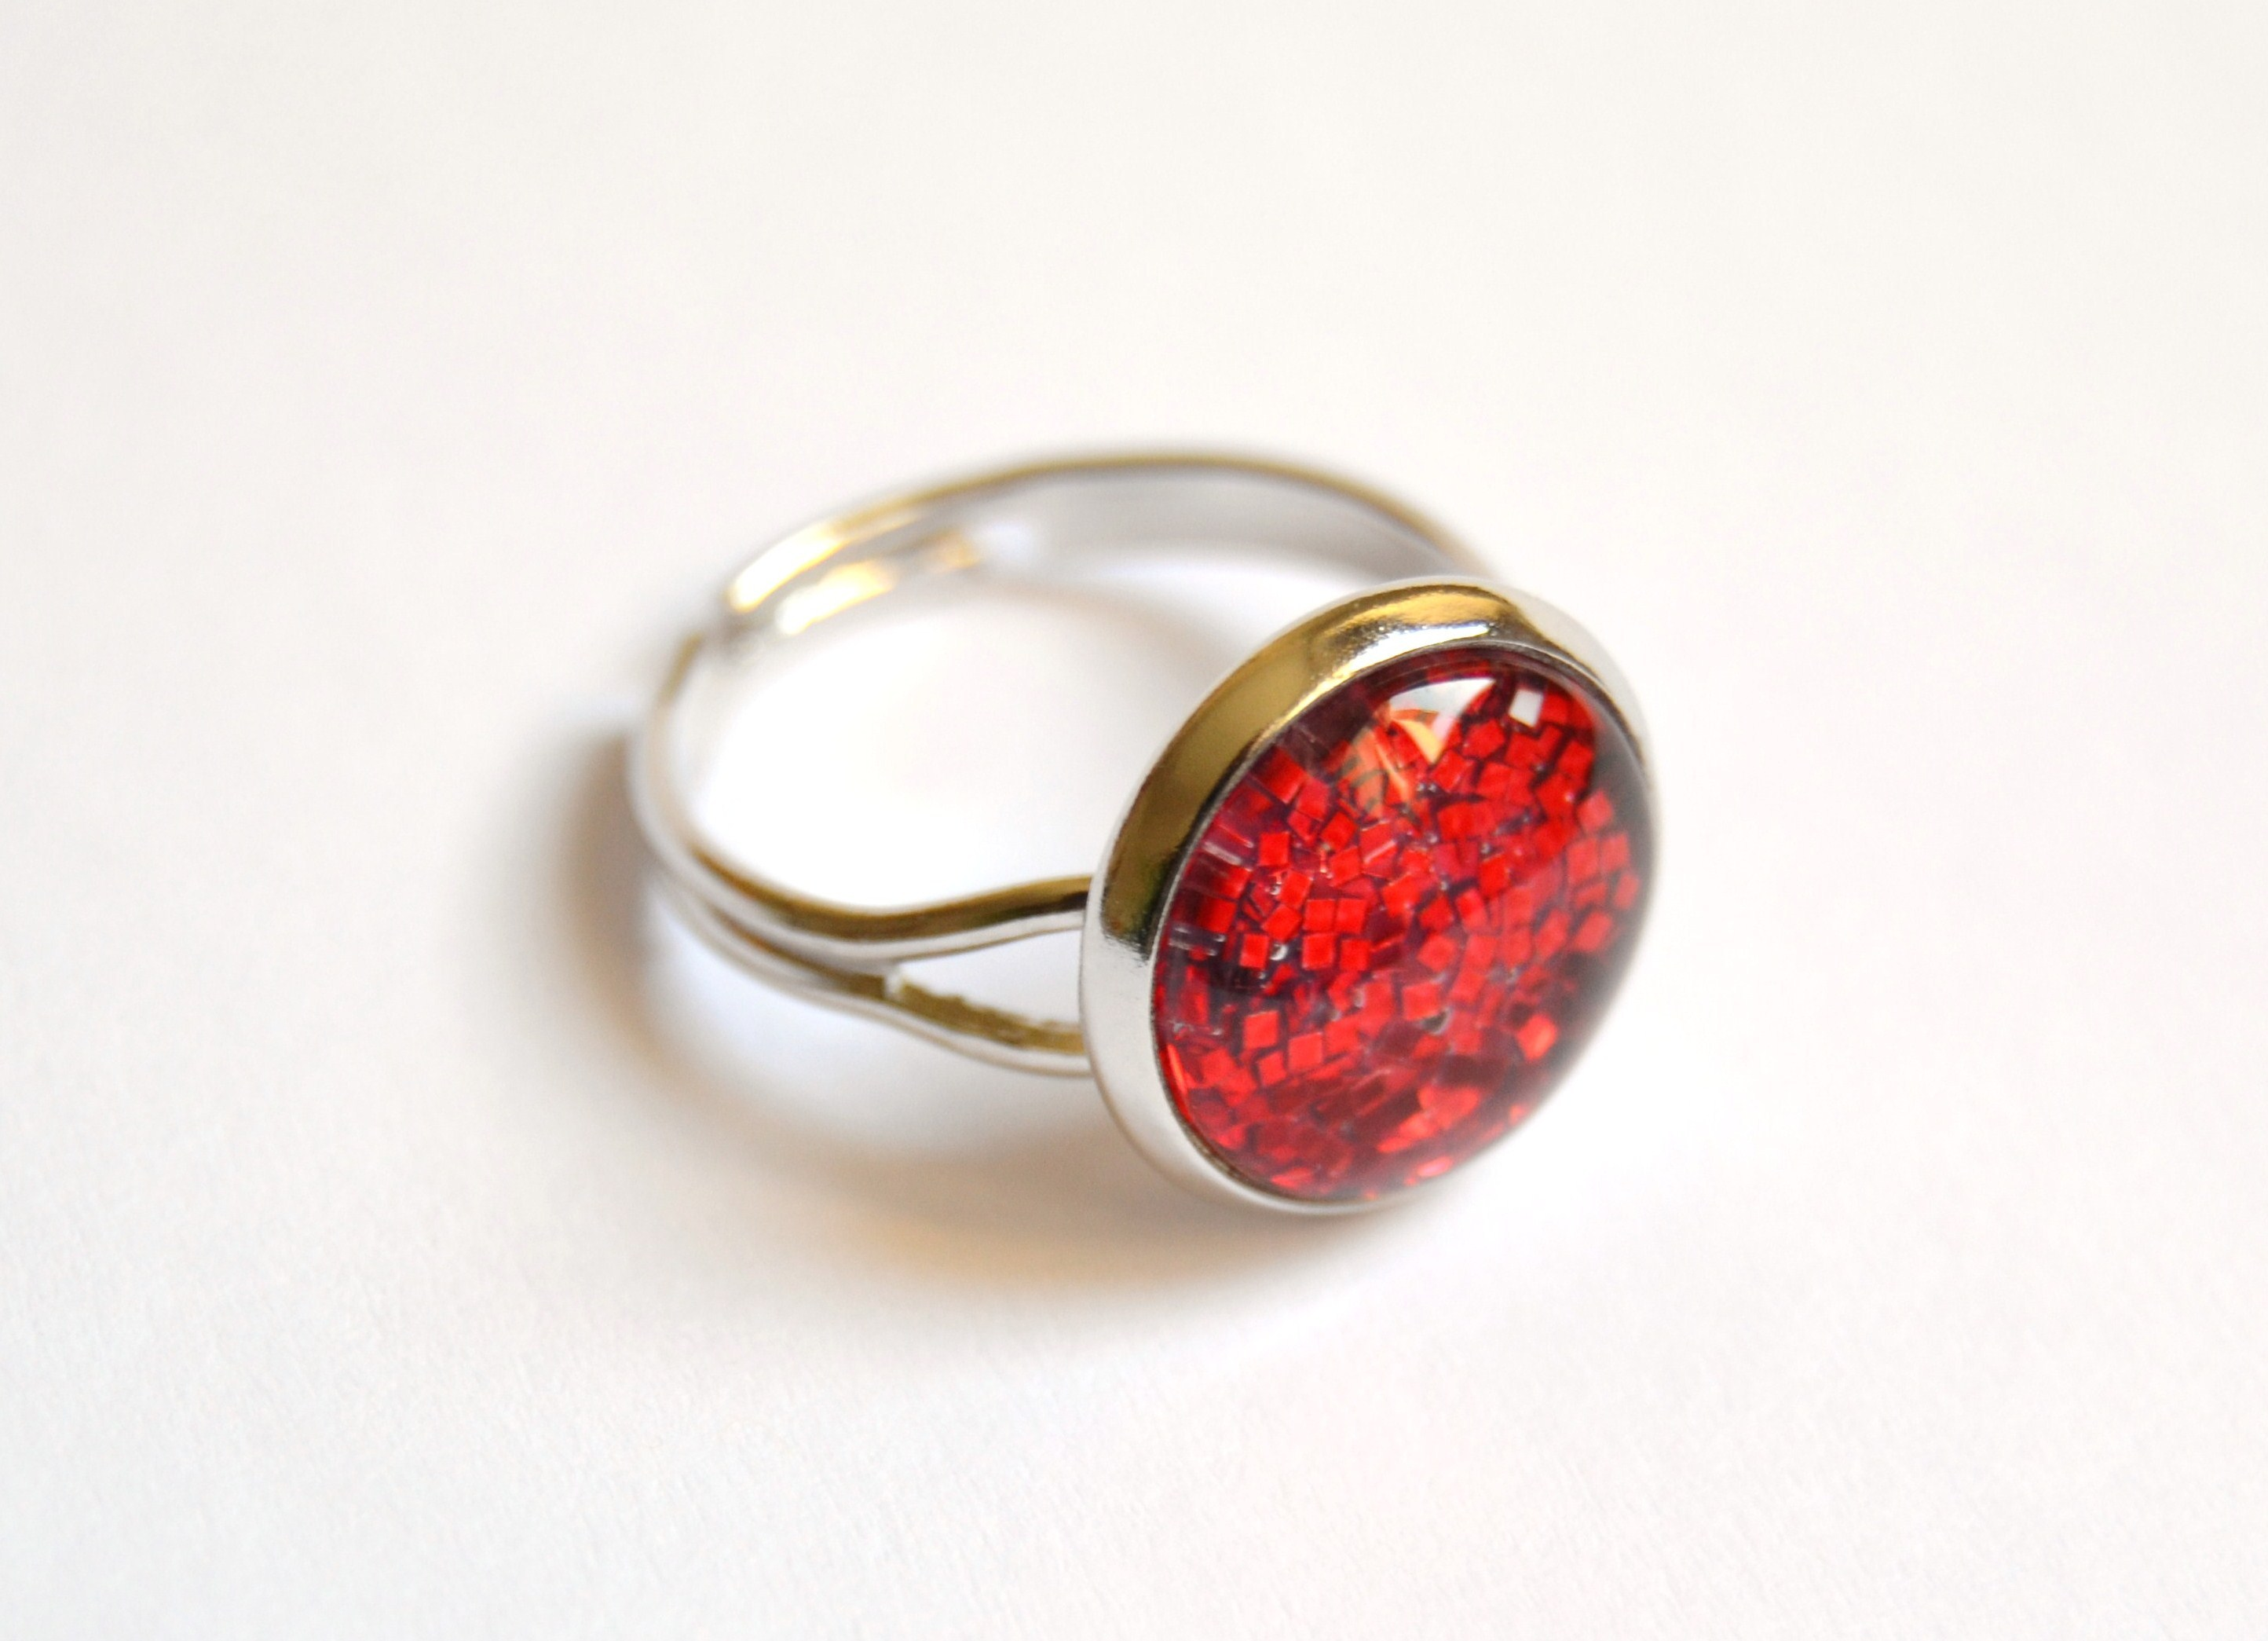 p glass ring red oval silver for rings trendy plated women wholesale